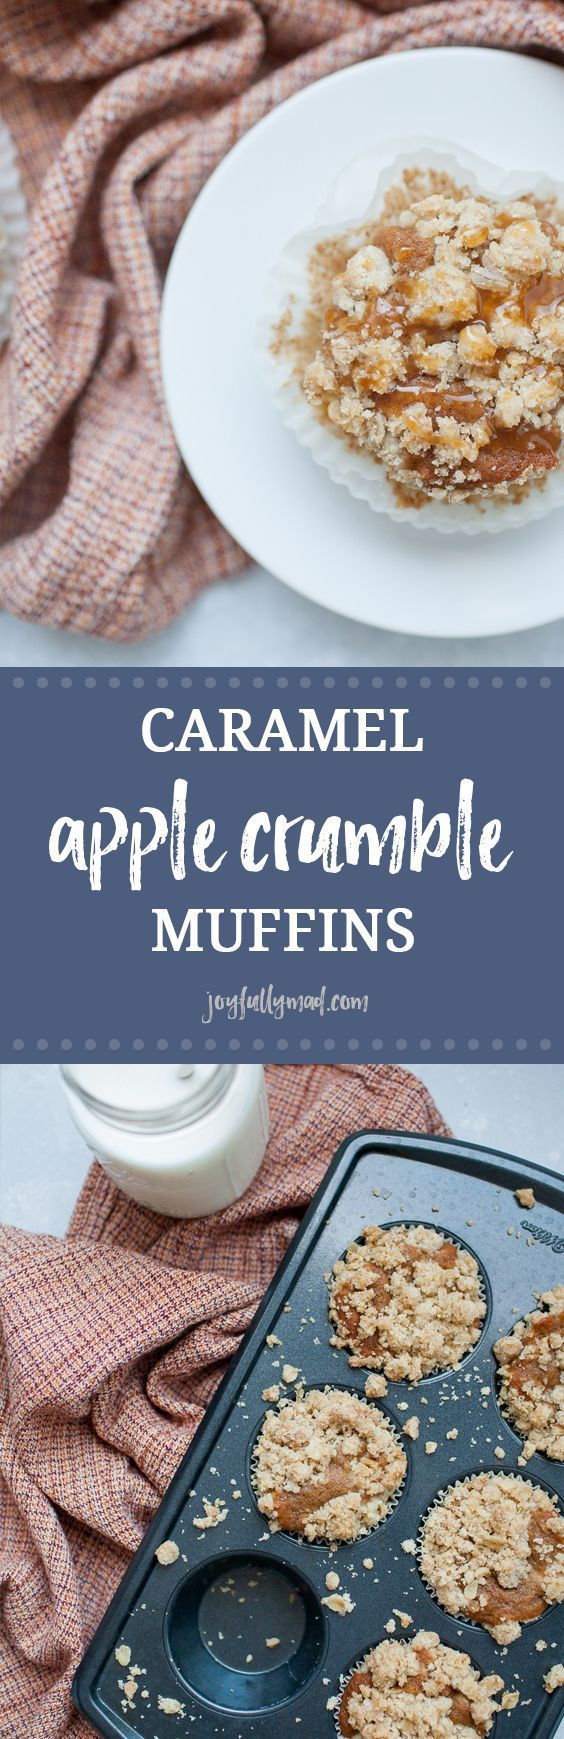 Caramel Apple Crumble Muffins Start your morning with Caramel Apple Crumble Muffins, the perfect morning treat! These apple spice muffins have a simple muffin base with fall spices like ginger, nutmeg and cinnamon added to it. Topped with the perfect crumble topping and caramel!